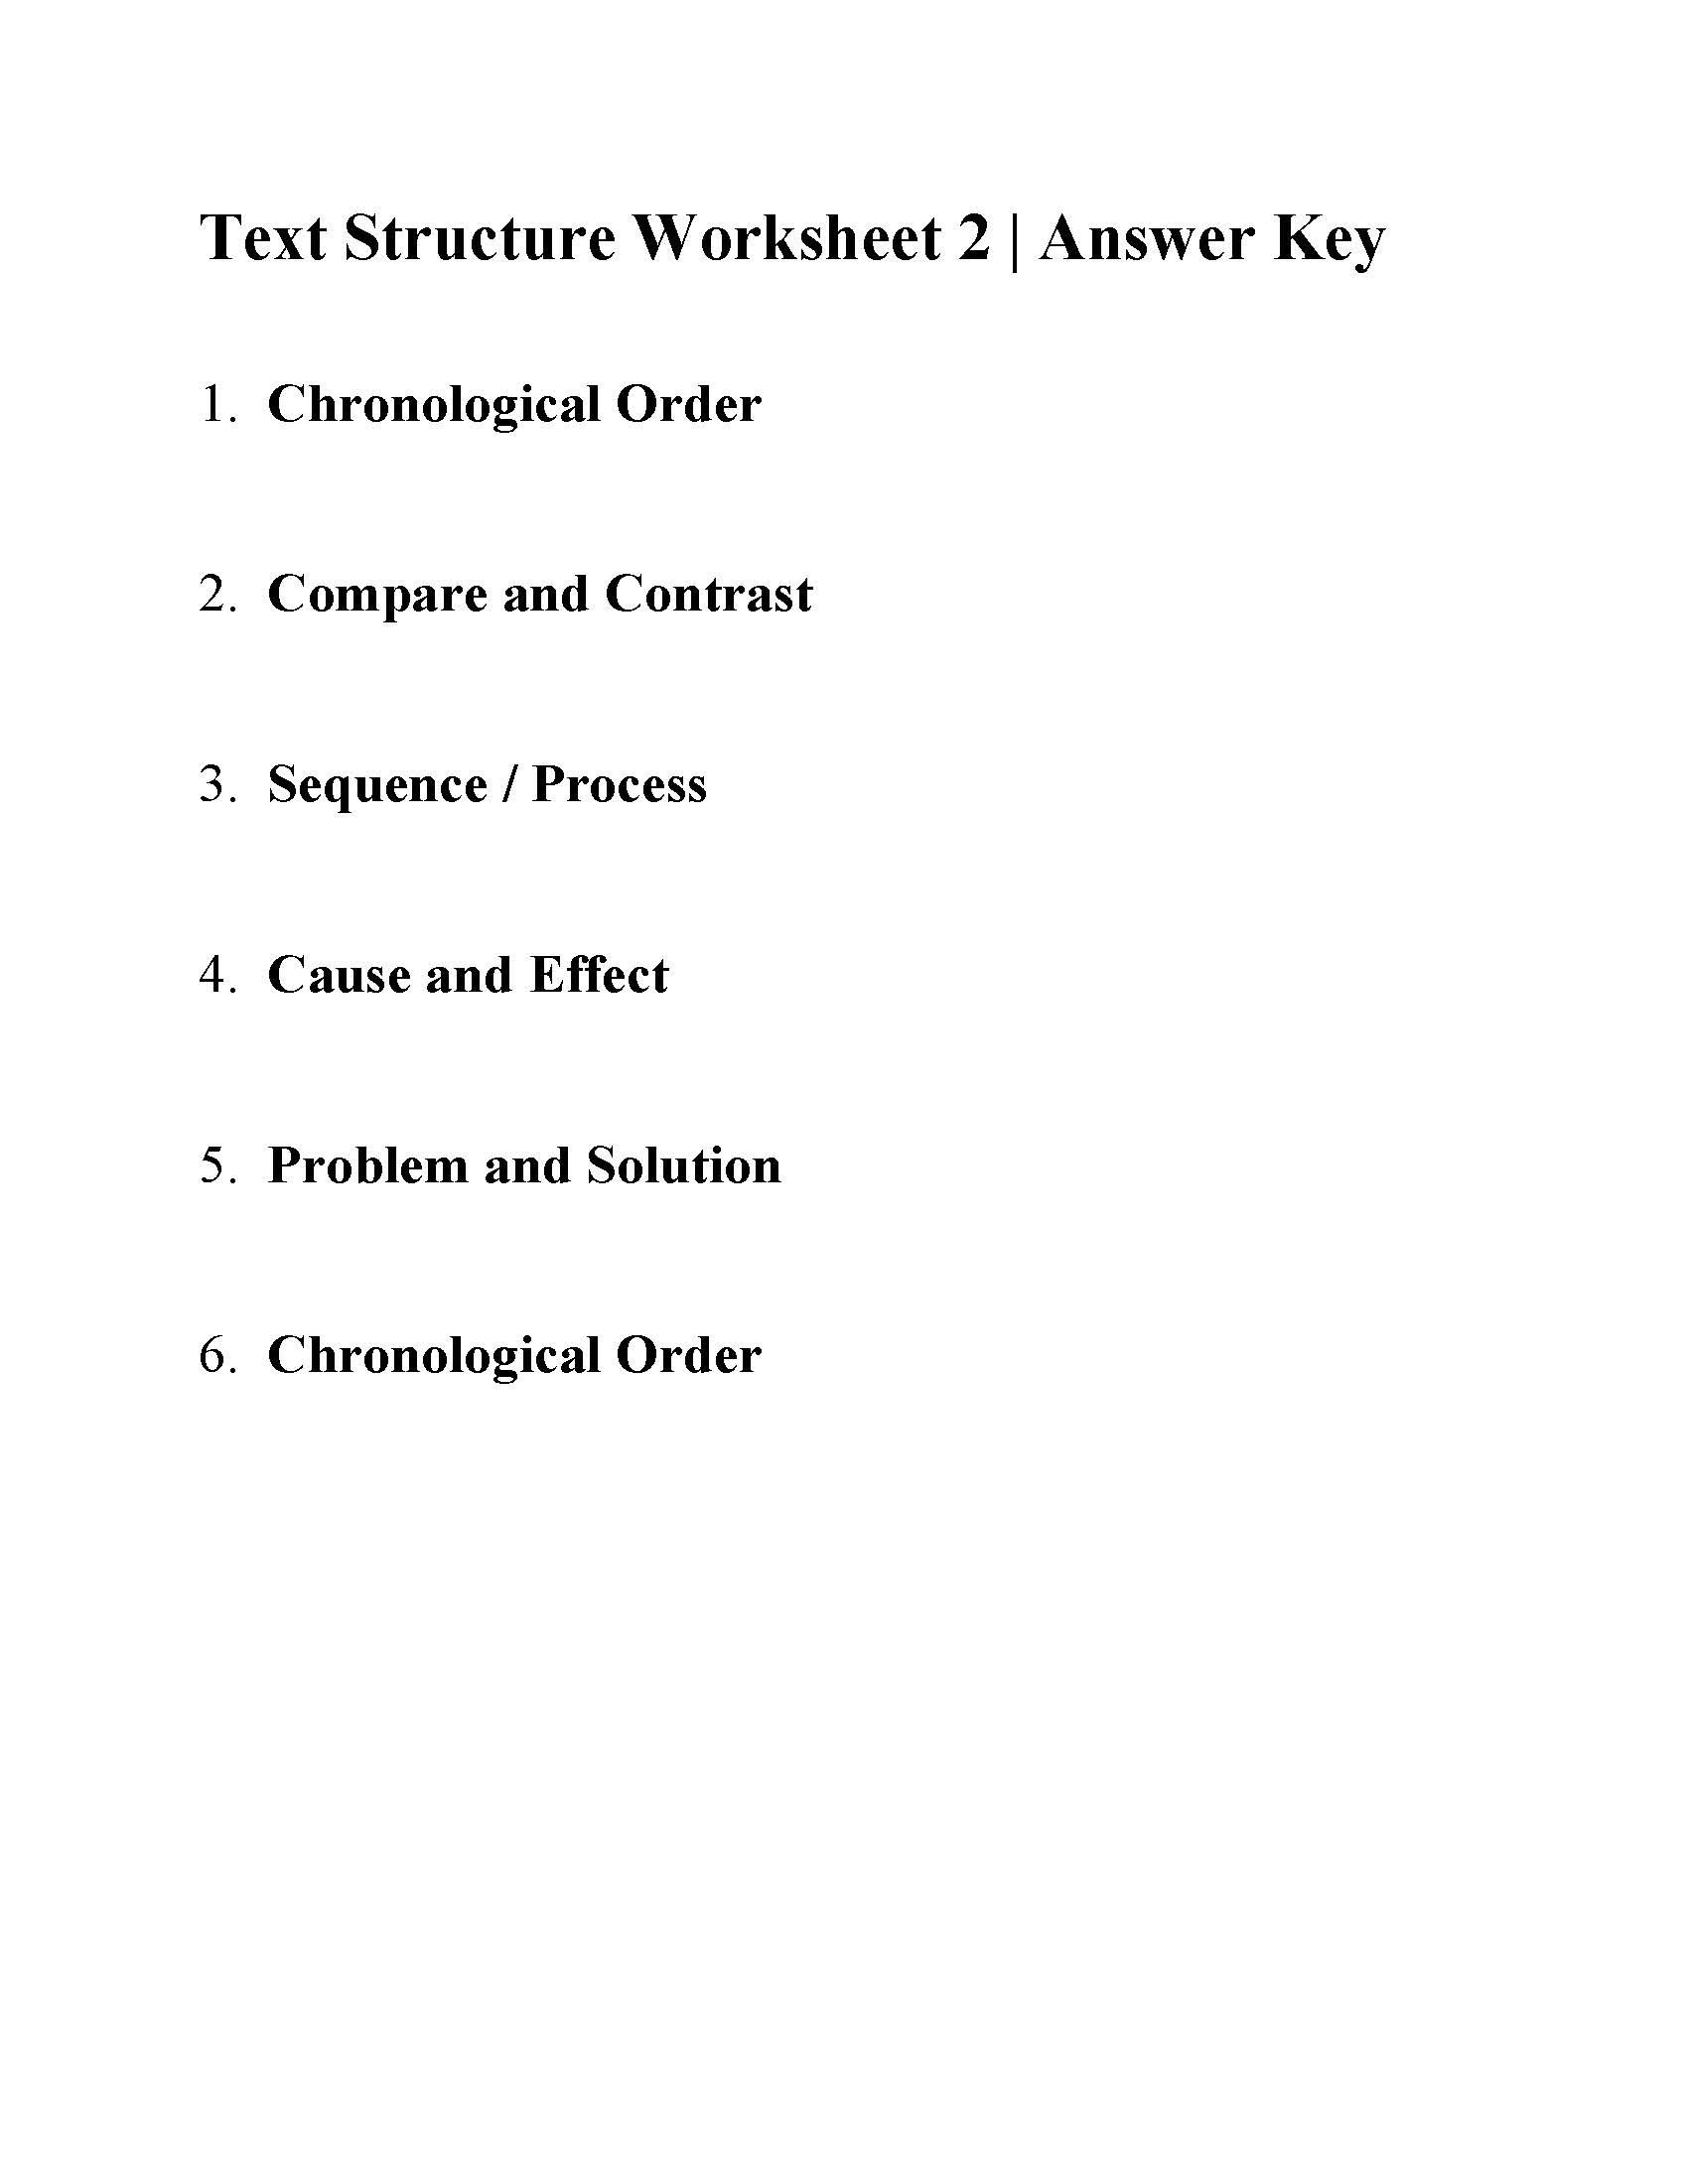 Text Structure Worksheets Grade 4 Text Structure Worksheet 2